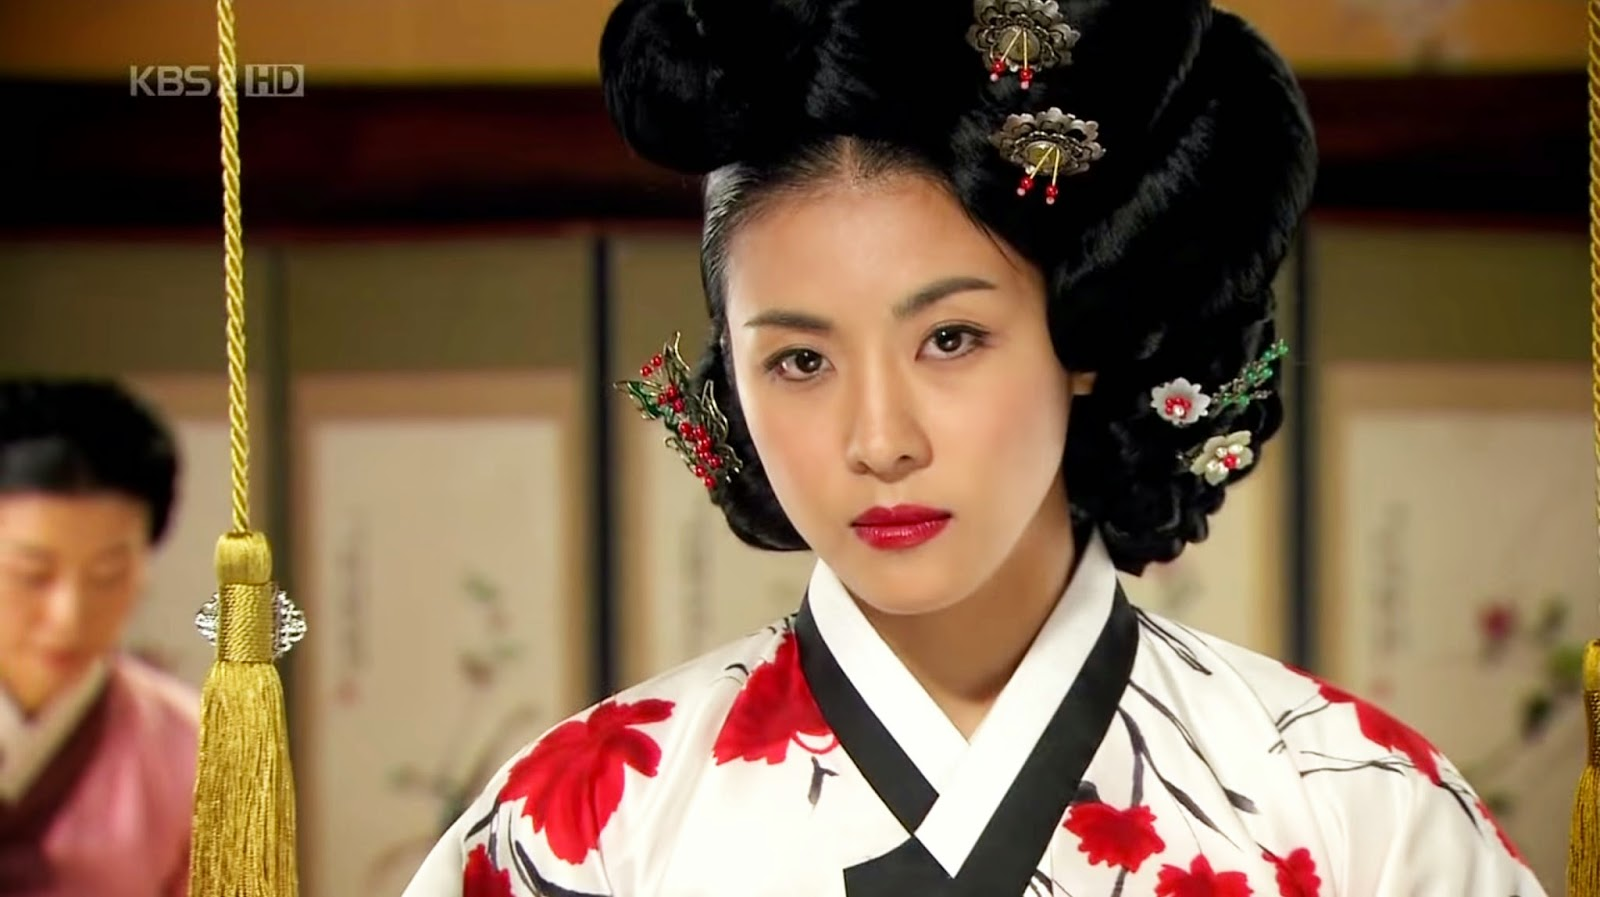 Suet Suyi Drama Korean Courtesan Gisaeng Hwang